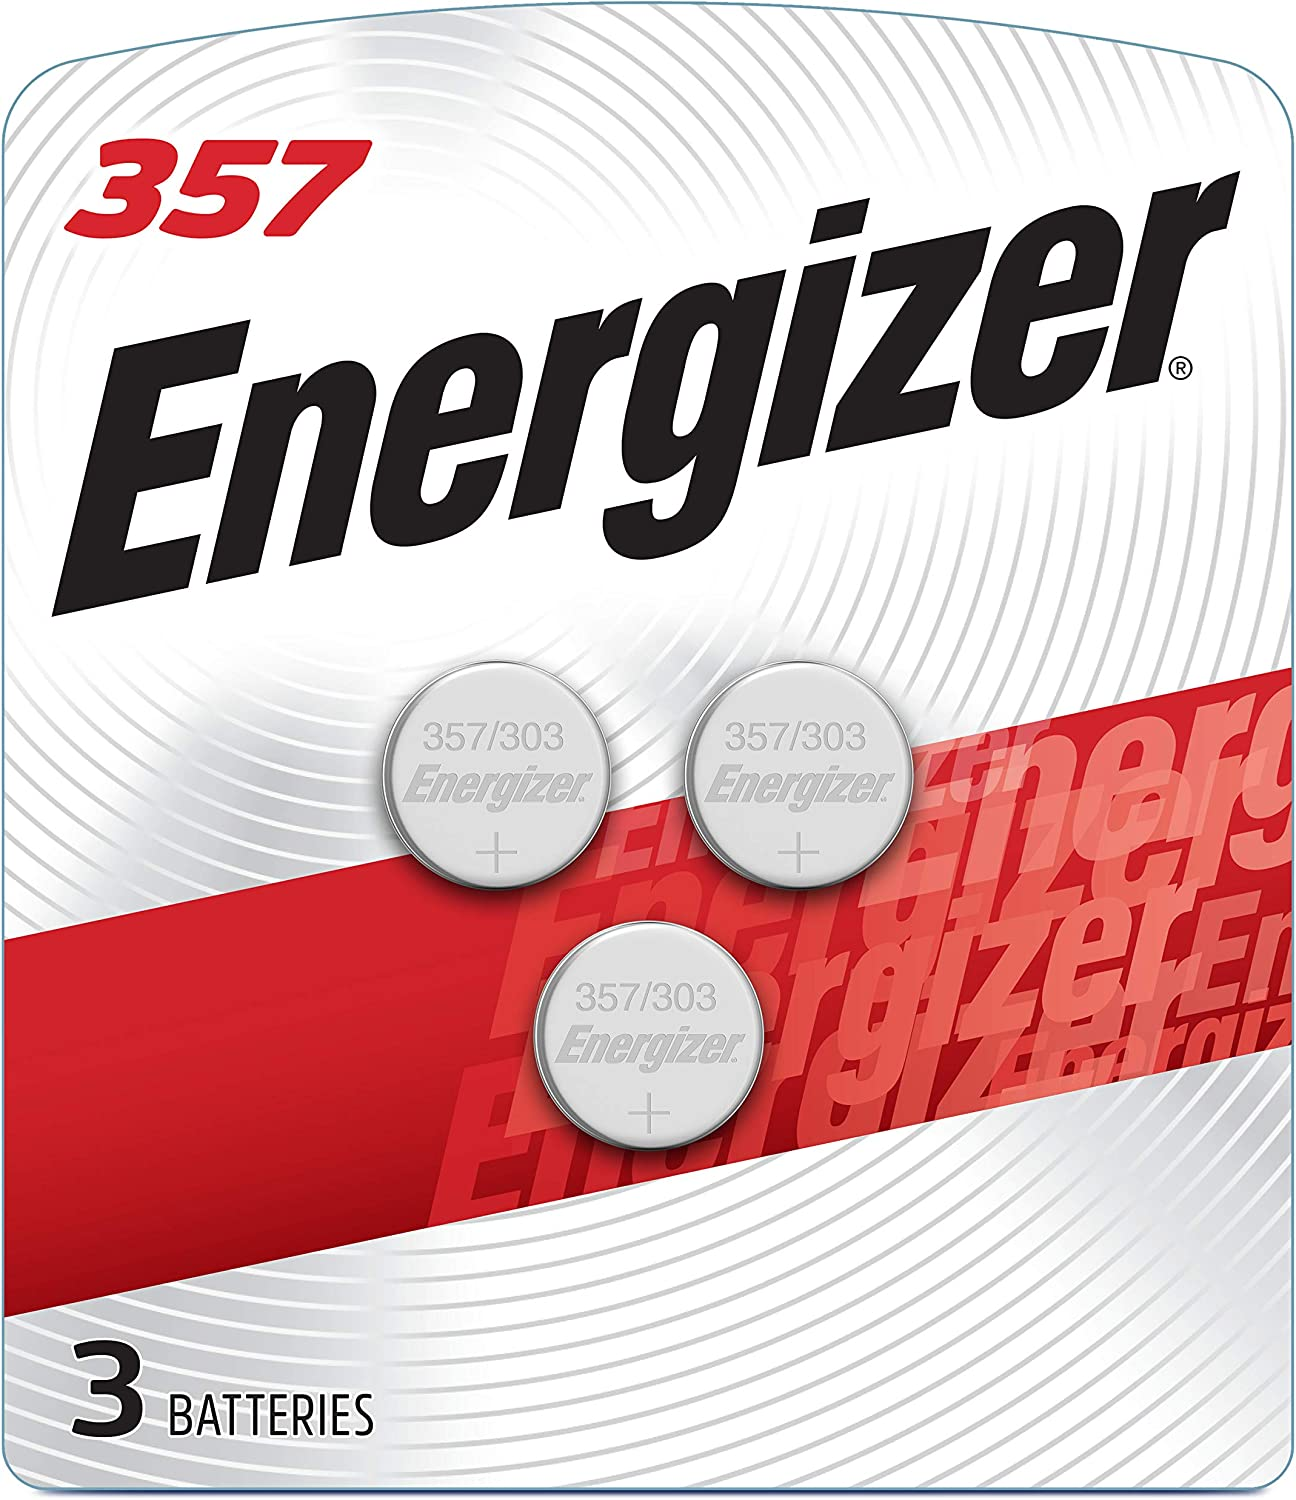 Amazon Com Energizer Lr44 Battery Silver Oxide 303 357 Ag13 Or Sr44 1 5 Volt Batteries 3 Battery Count Health Personal Care